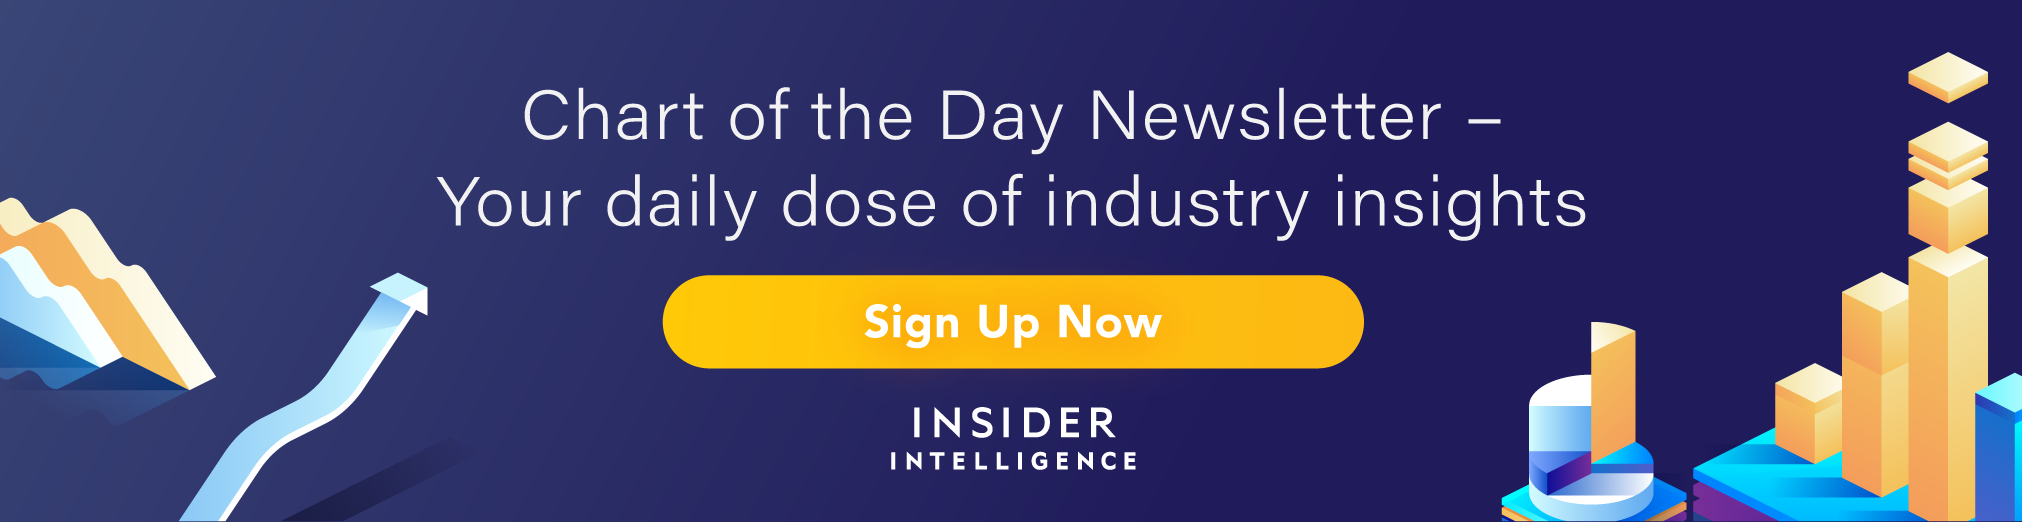 Sign up today: The free infographic for Insider Intelligence's daily newsletter